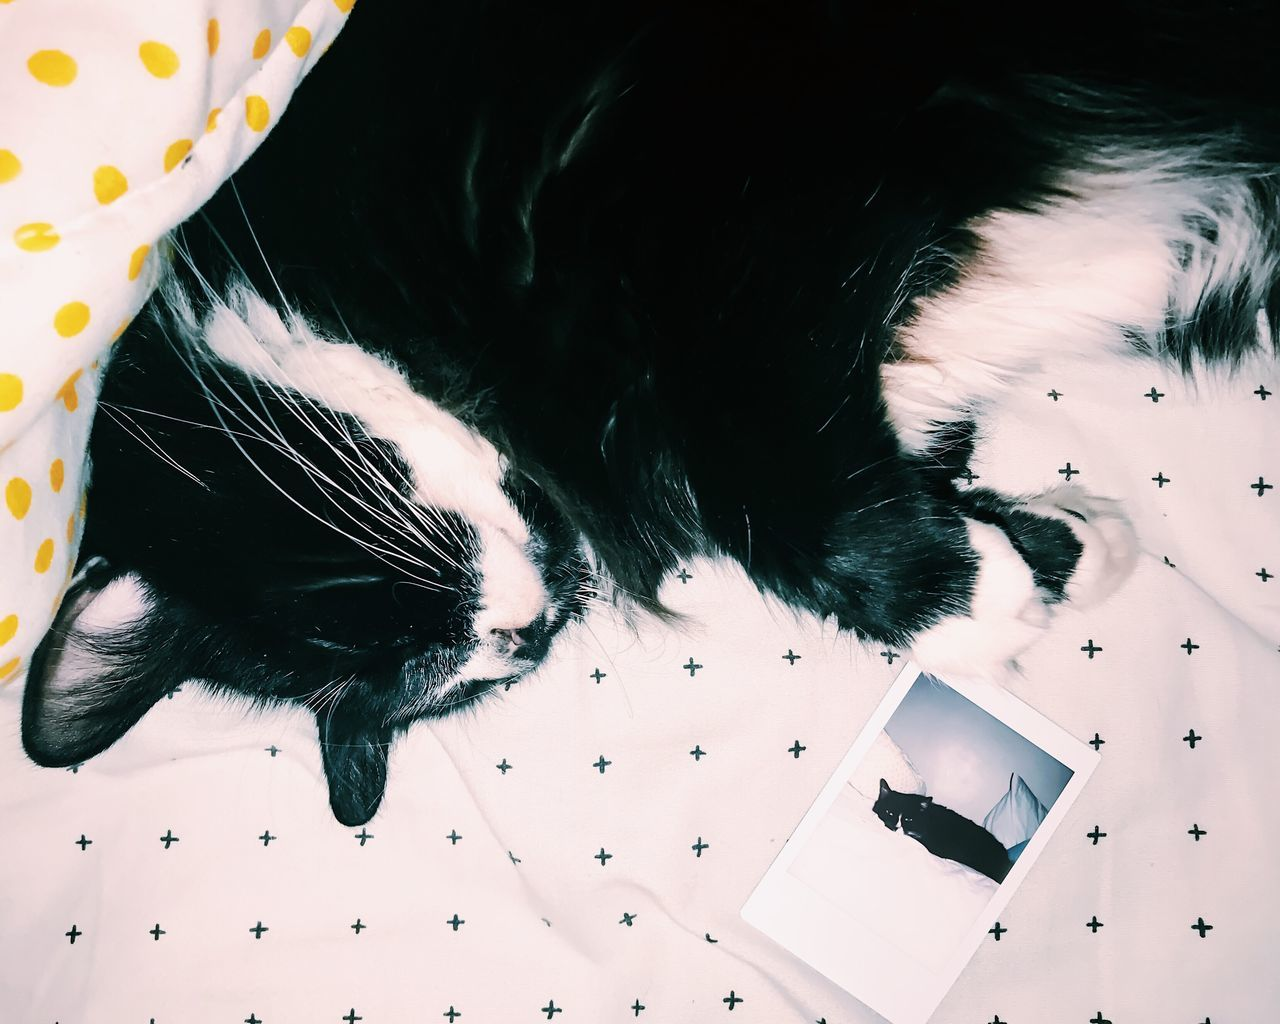 Bed ,  Blanket,  Cat,  Close-Up,  Day